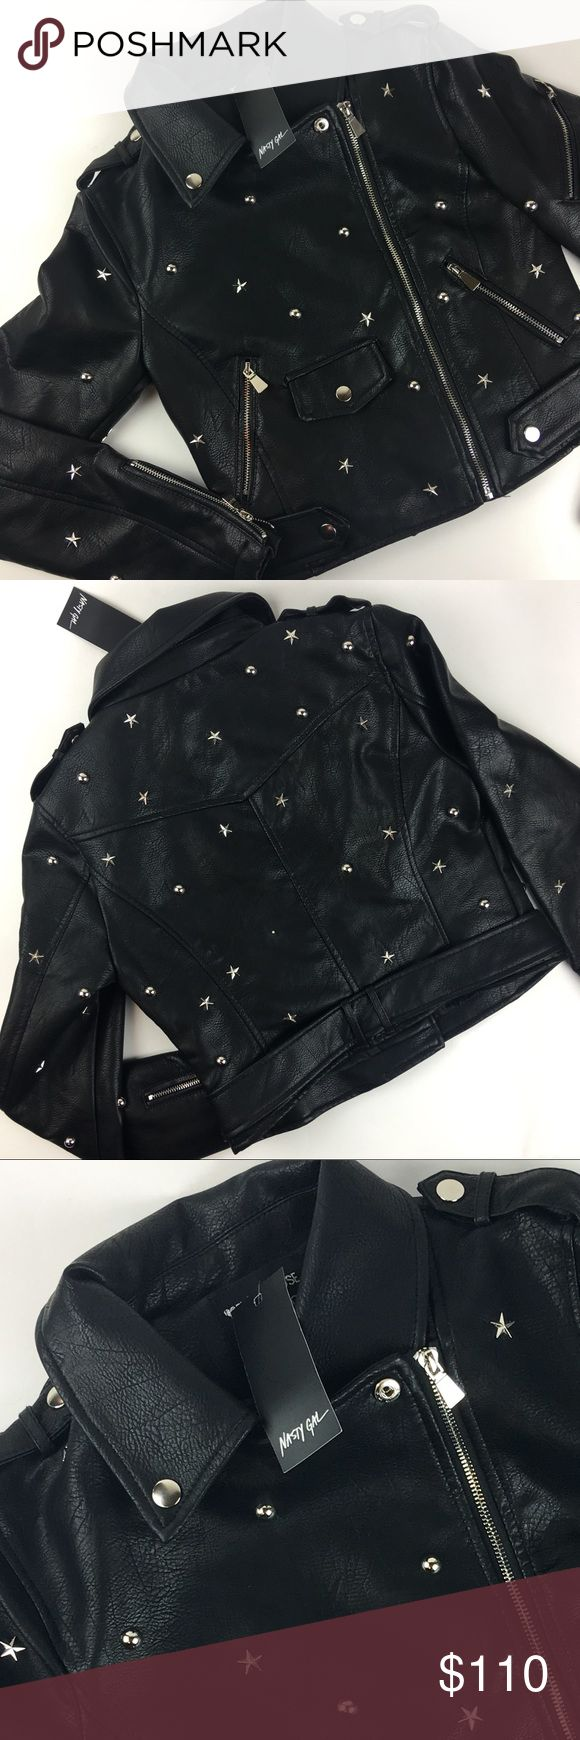 NWT Nasty Gal Studded Leather Jacket Nasty Gal Studded Jacket  Size: Small Color: Black  Retail tags attached  ❌no holds ❌no trades (C) Nasty Gal Jackets & Coats